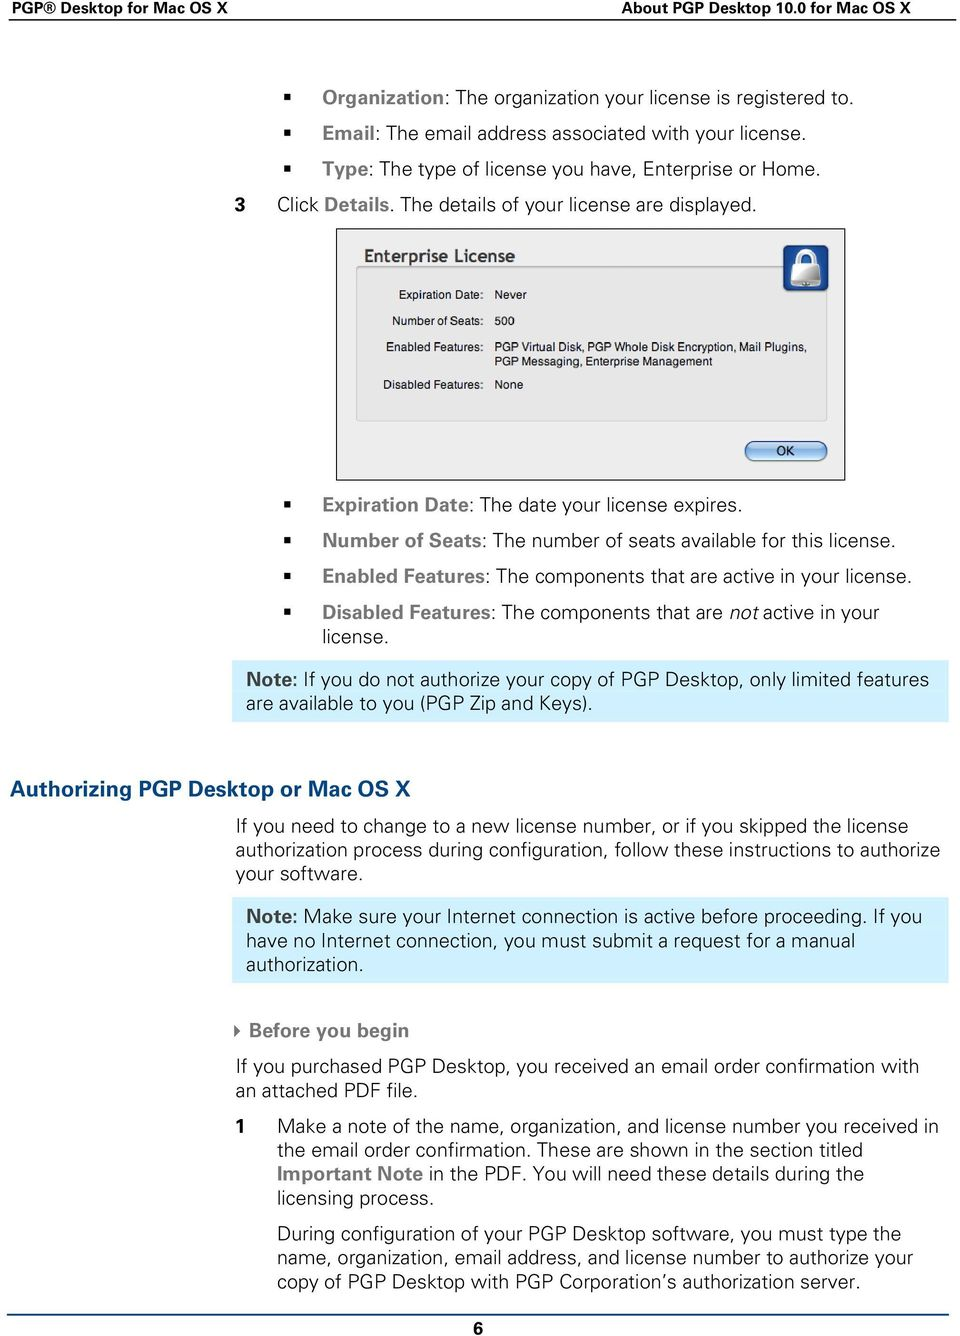 PGP Desktop for Mac OS X  User's Guide - PDF